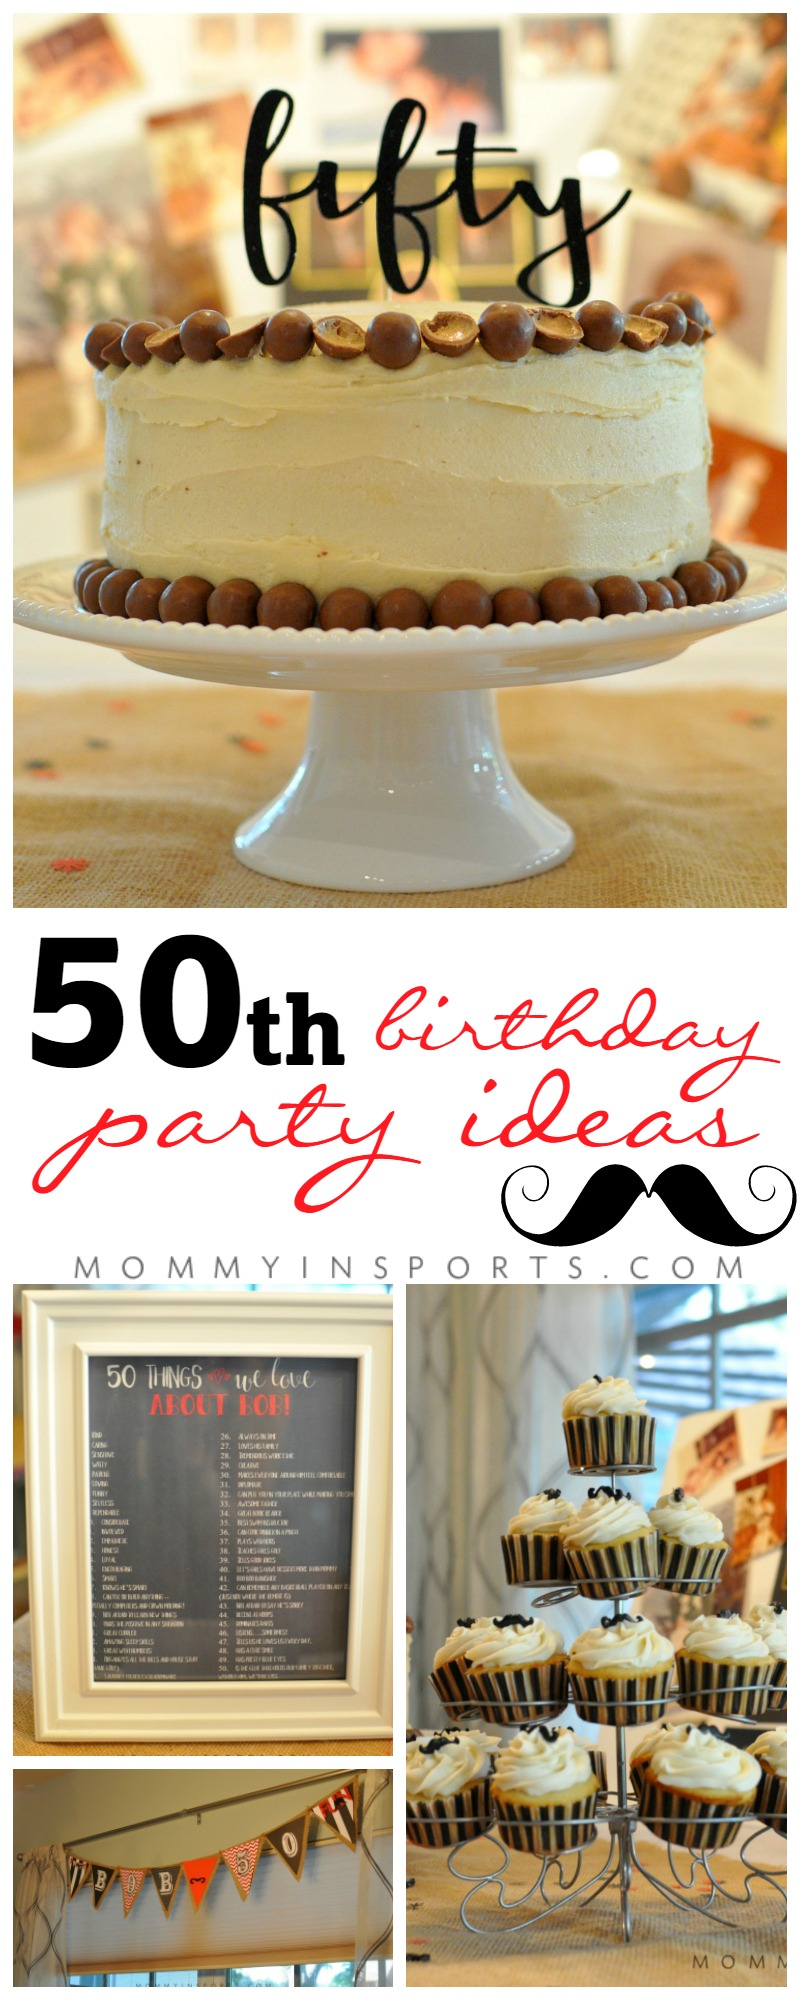 50th Birthday Party Ideas Kristen Hewitt